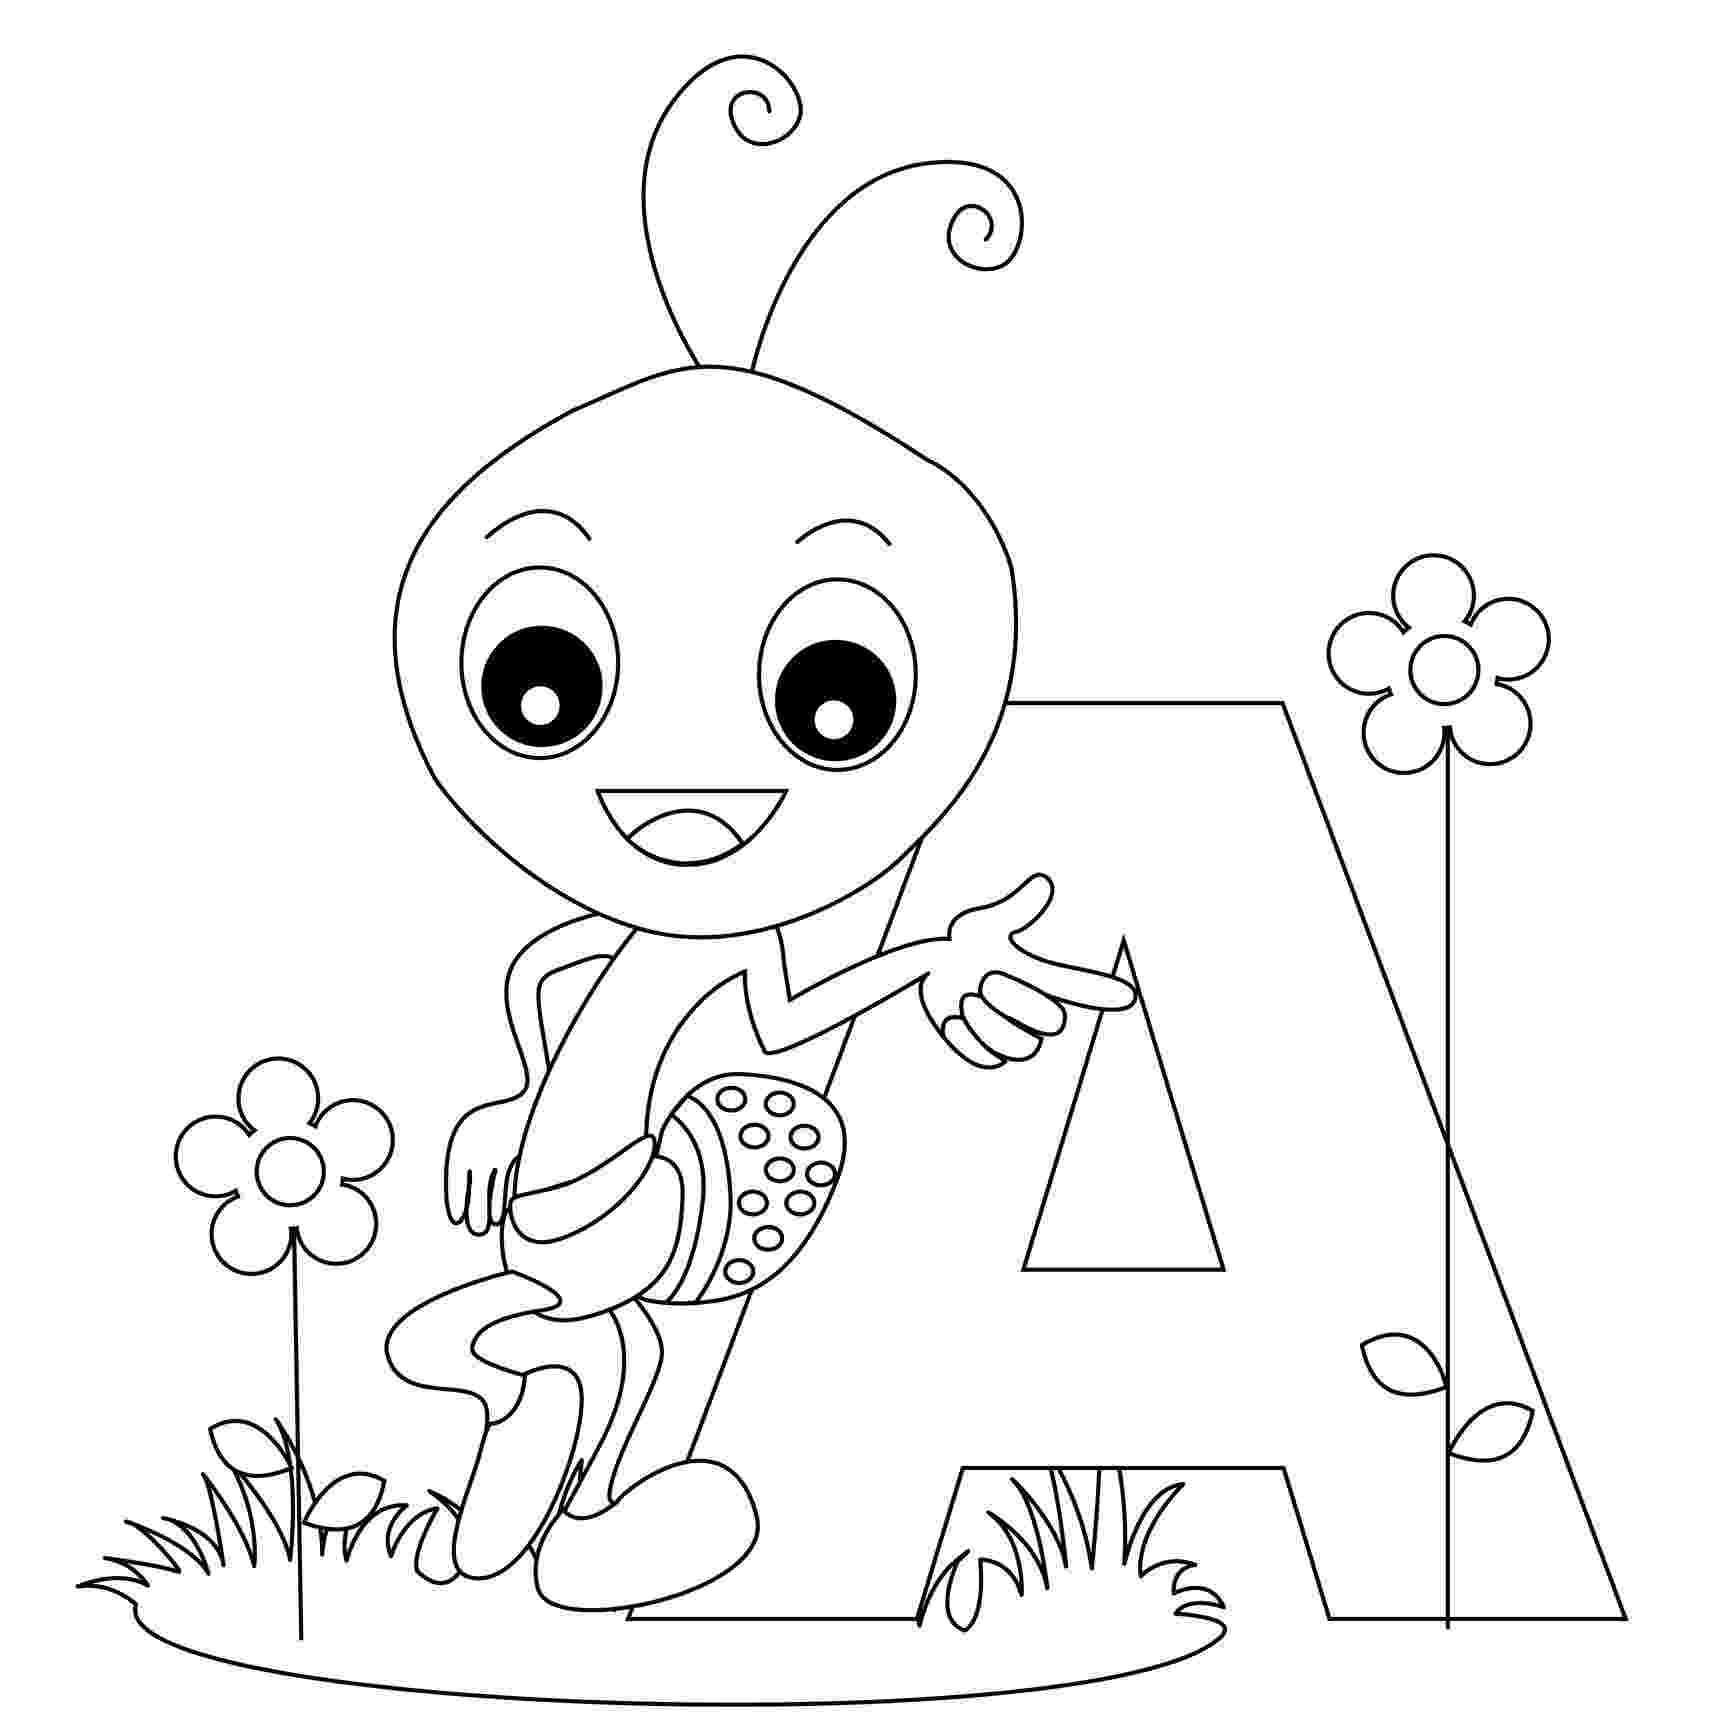 letter coloring pages printable free printable alphabet coloring pages for kids best pages coloring letter printable